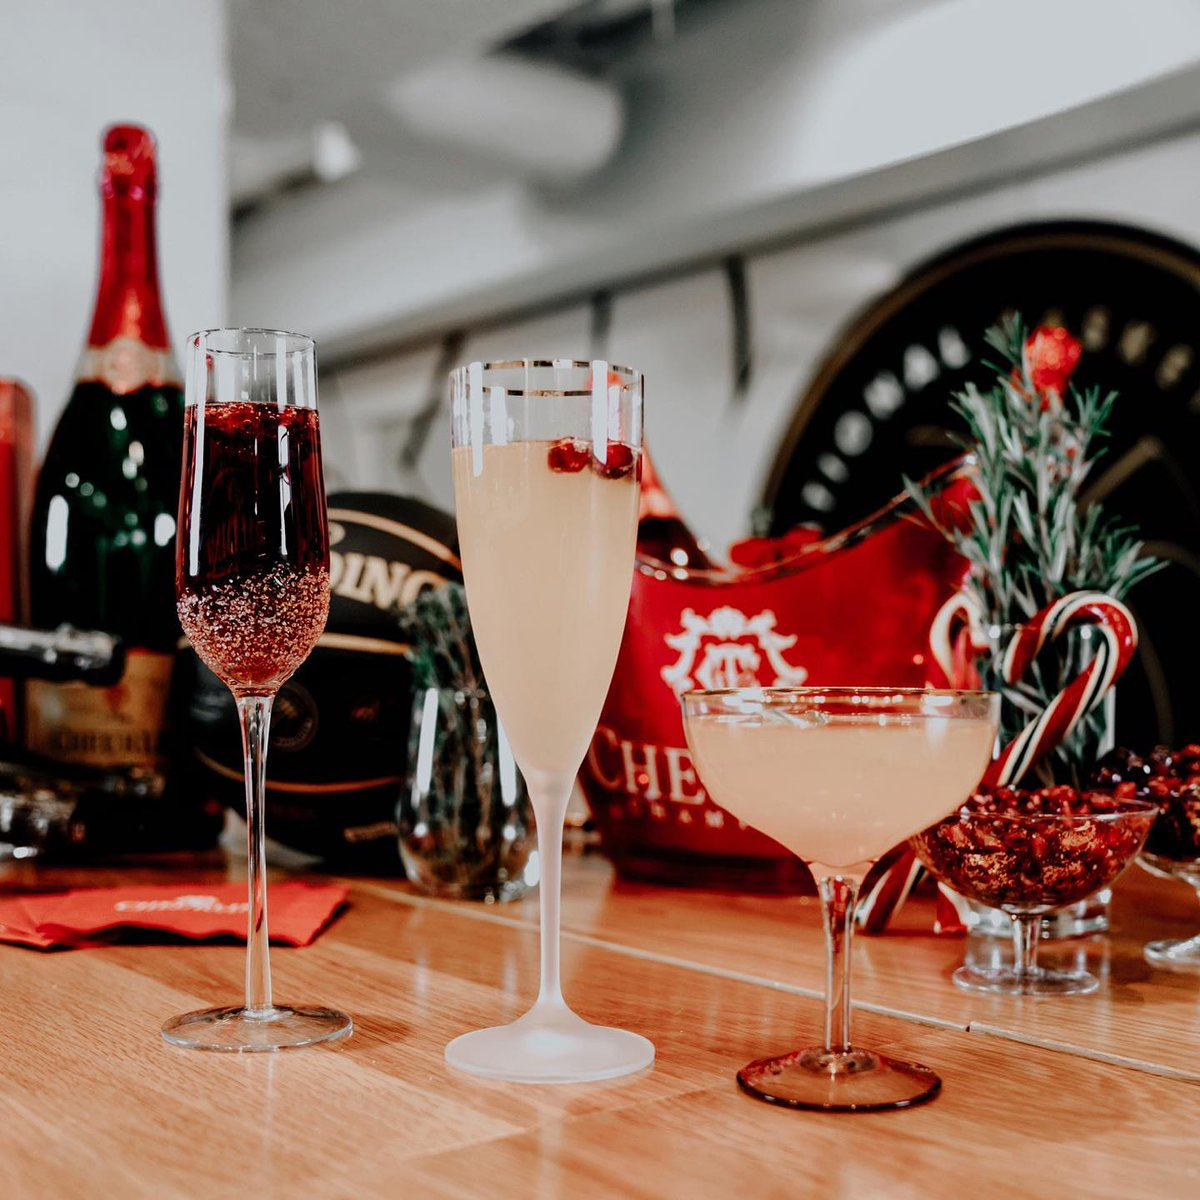 Getting in the holiday spirit with some #Cheurlin1788 cocktails! #HappyHolidays 😊🍾